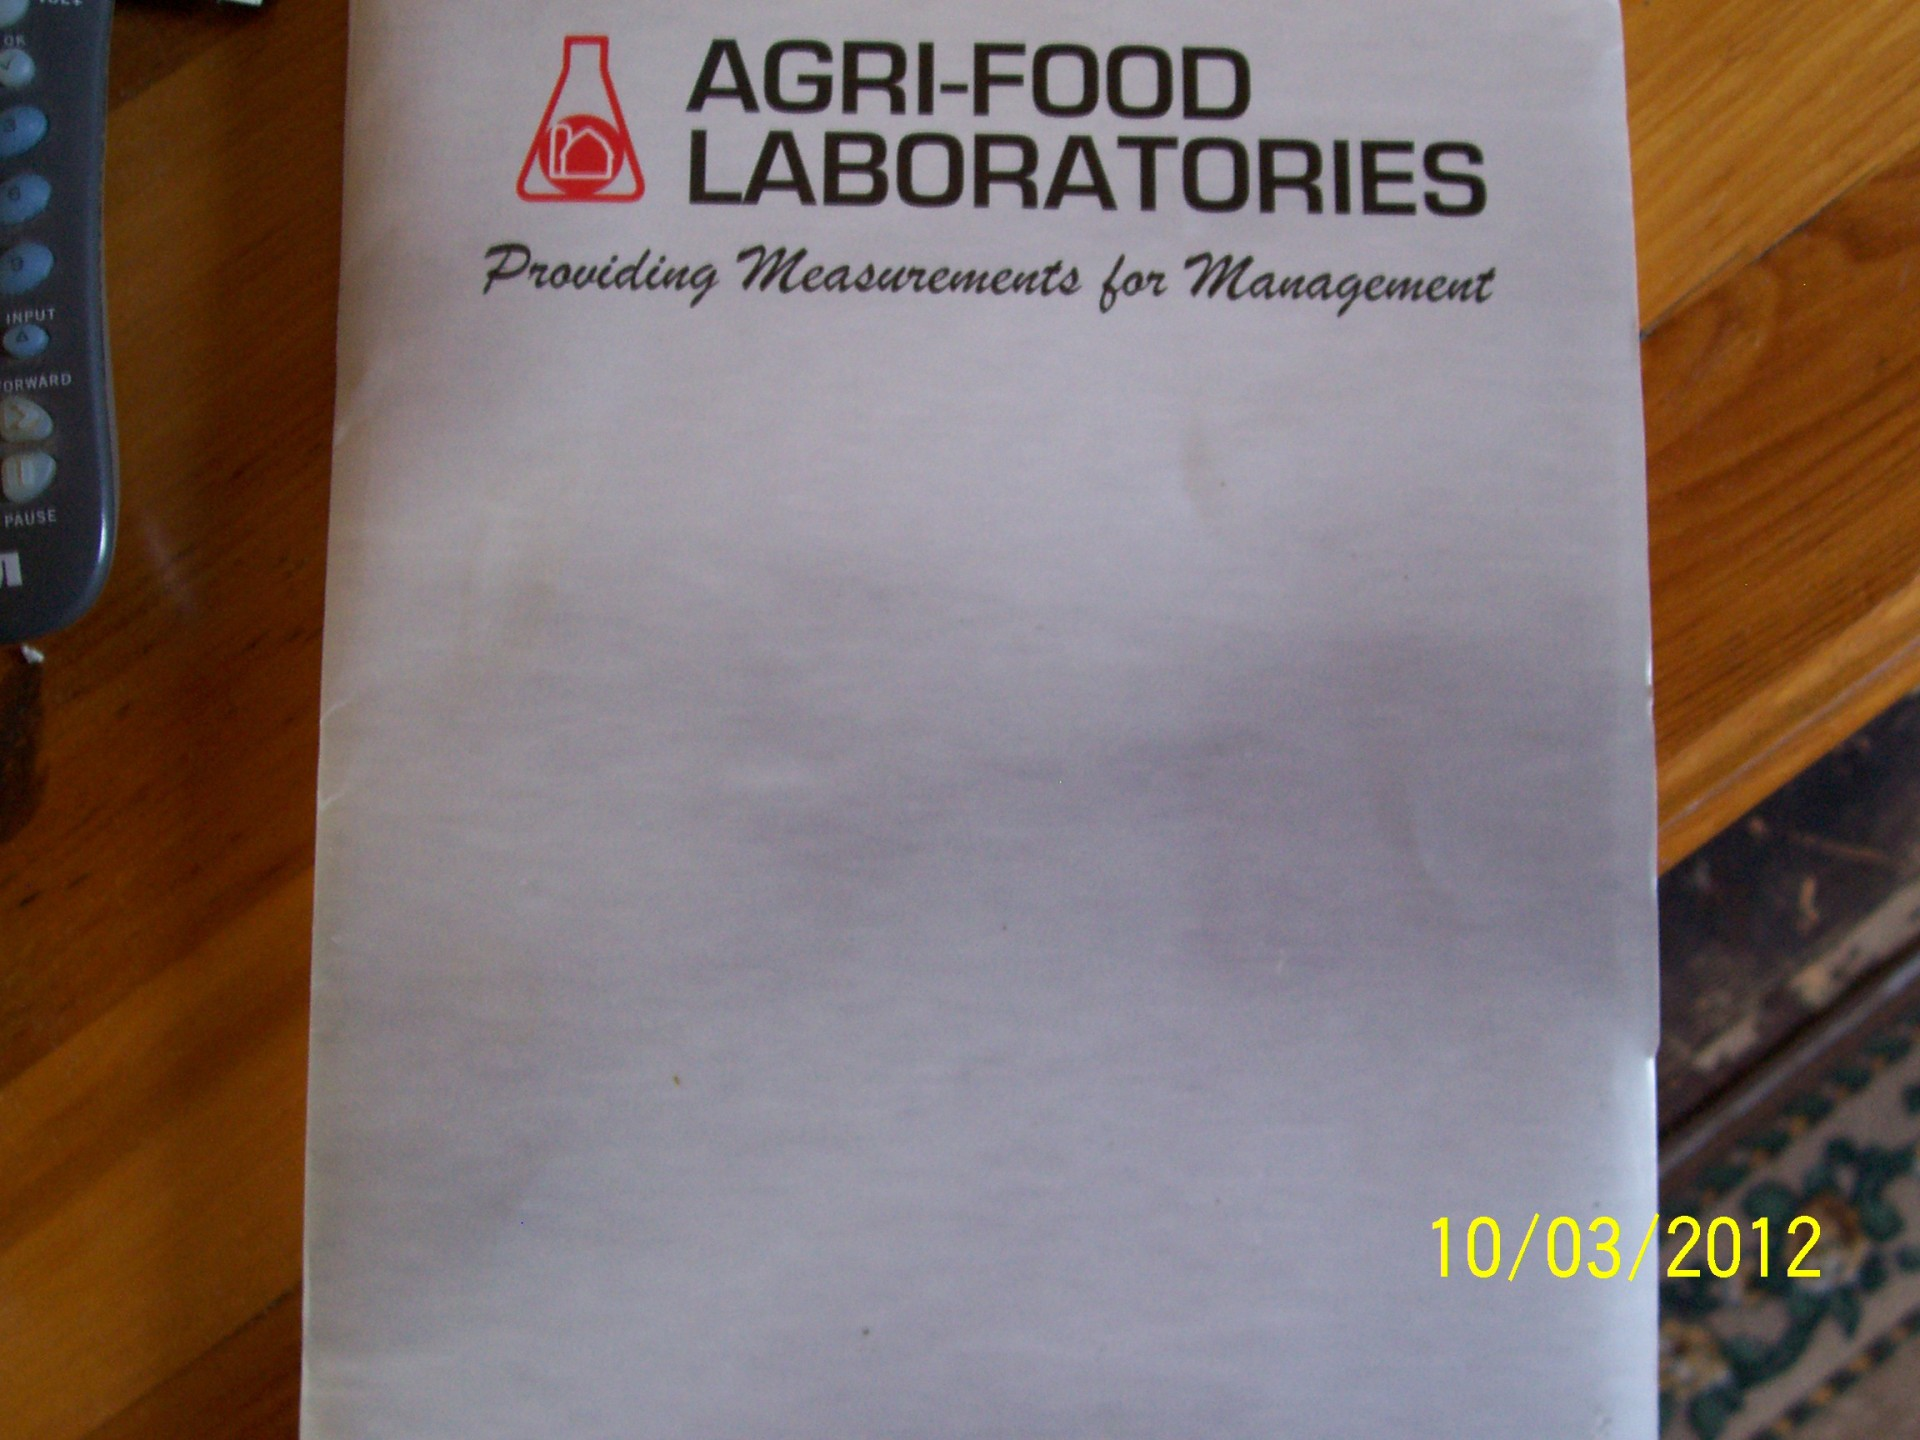 Thank you to Agric-Food Laboratories GFP Workshop